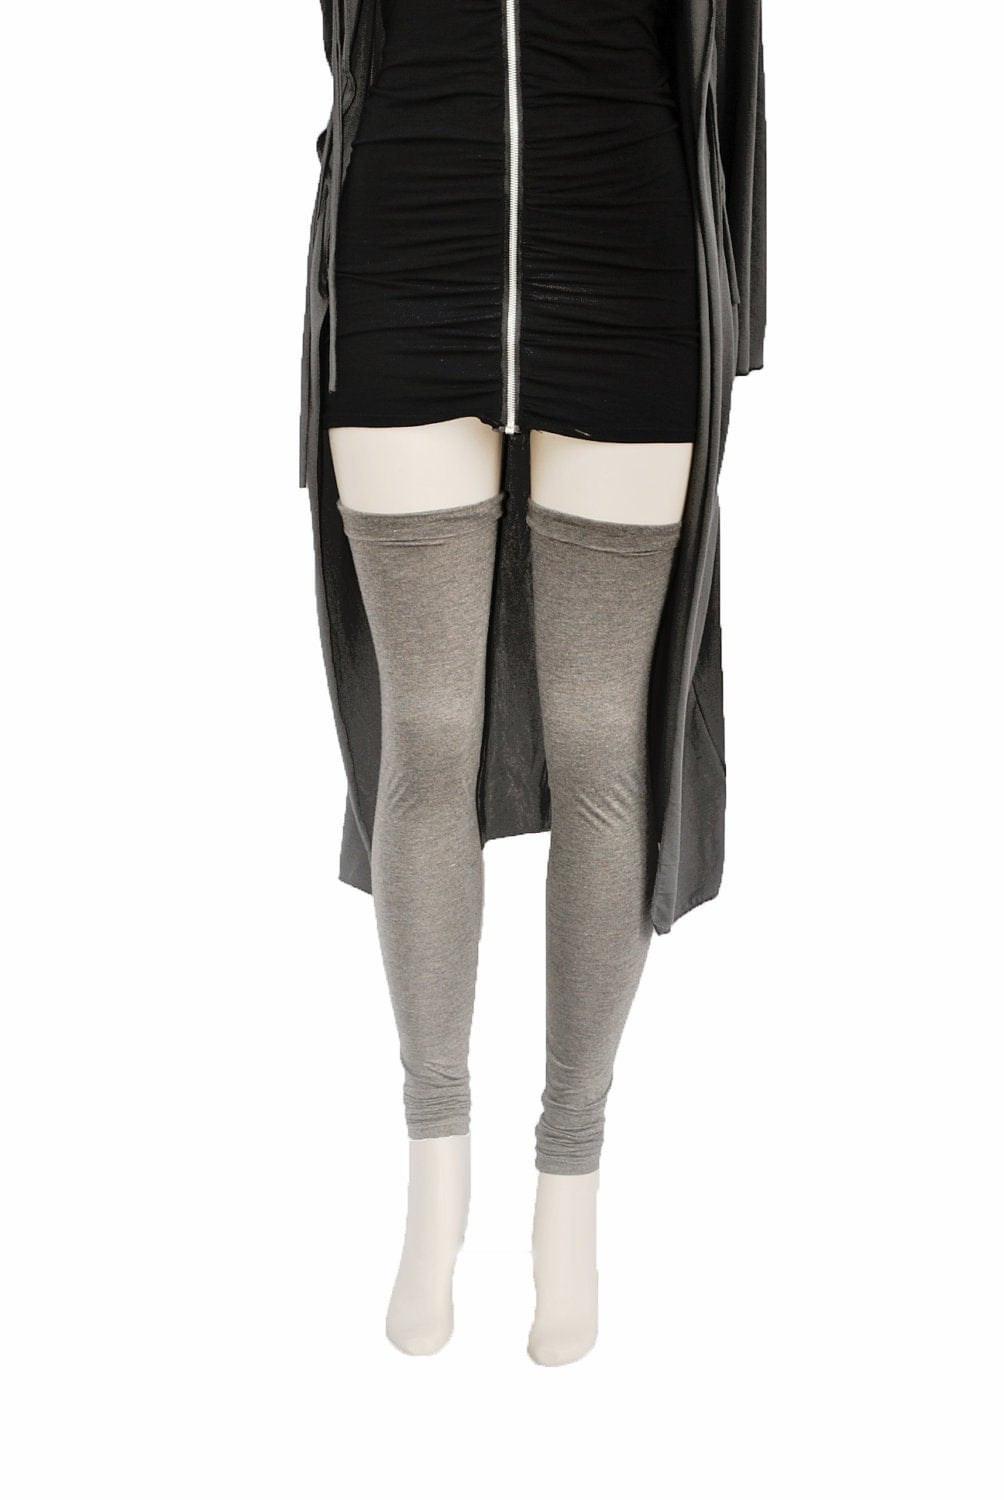 Thigh High Leg Warmers Heather Charcoal Womens Spring Cuffed and Ruched - FineThreadz